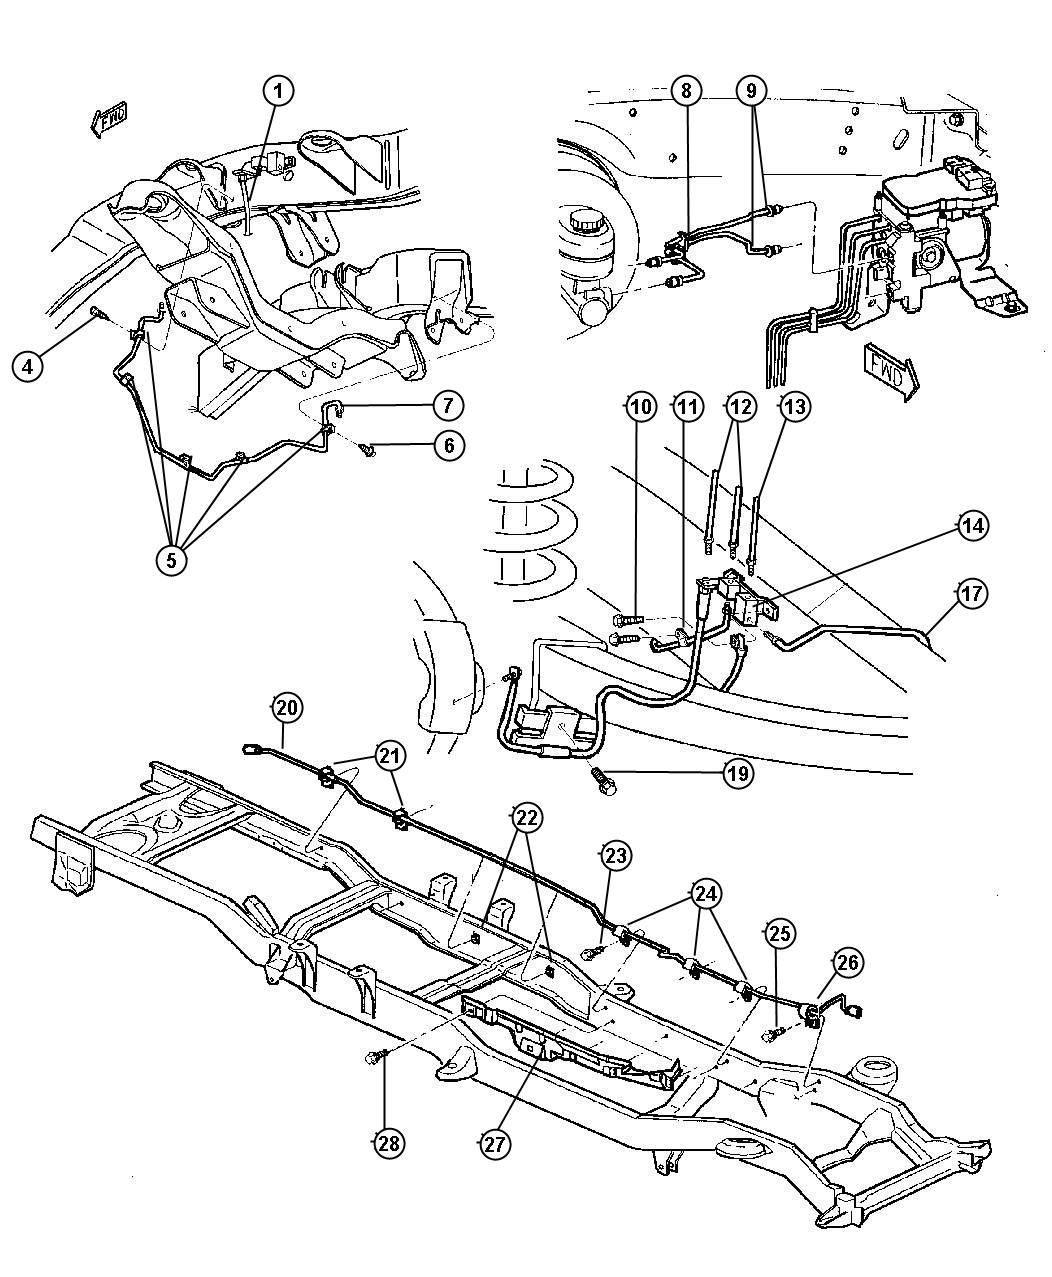 2002 Dodge Ram 1500 Brake Line Diagram Wiring Diagrams For 1998 3500 4x4 1999 Pictures To Pin On Rear